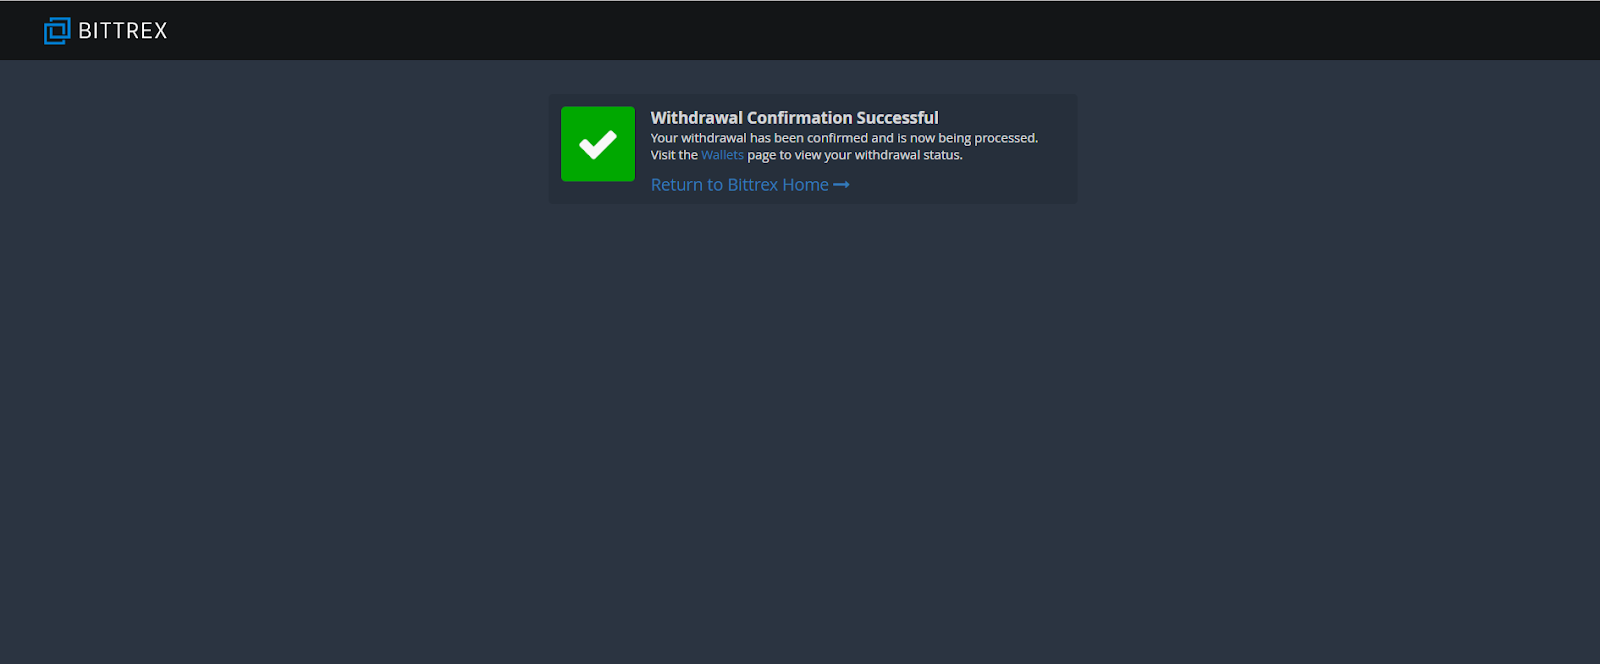 Bittrex withdrawal confirmation screen shot.